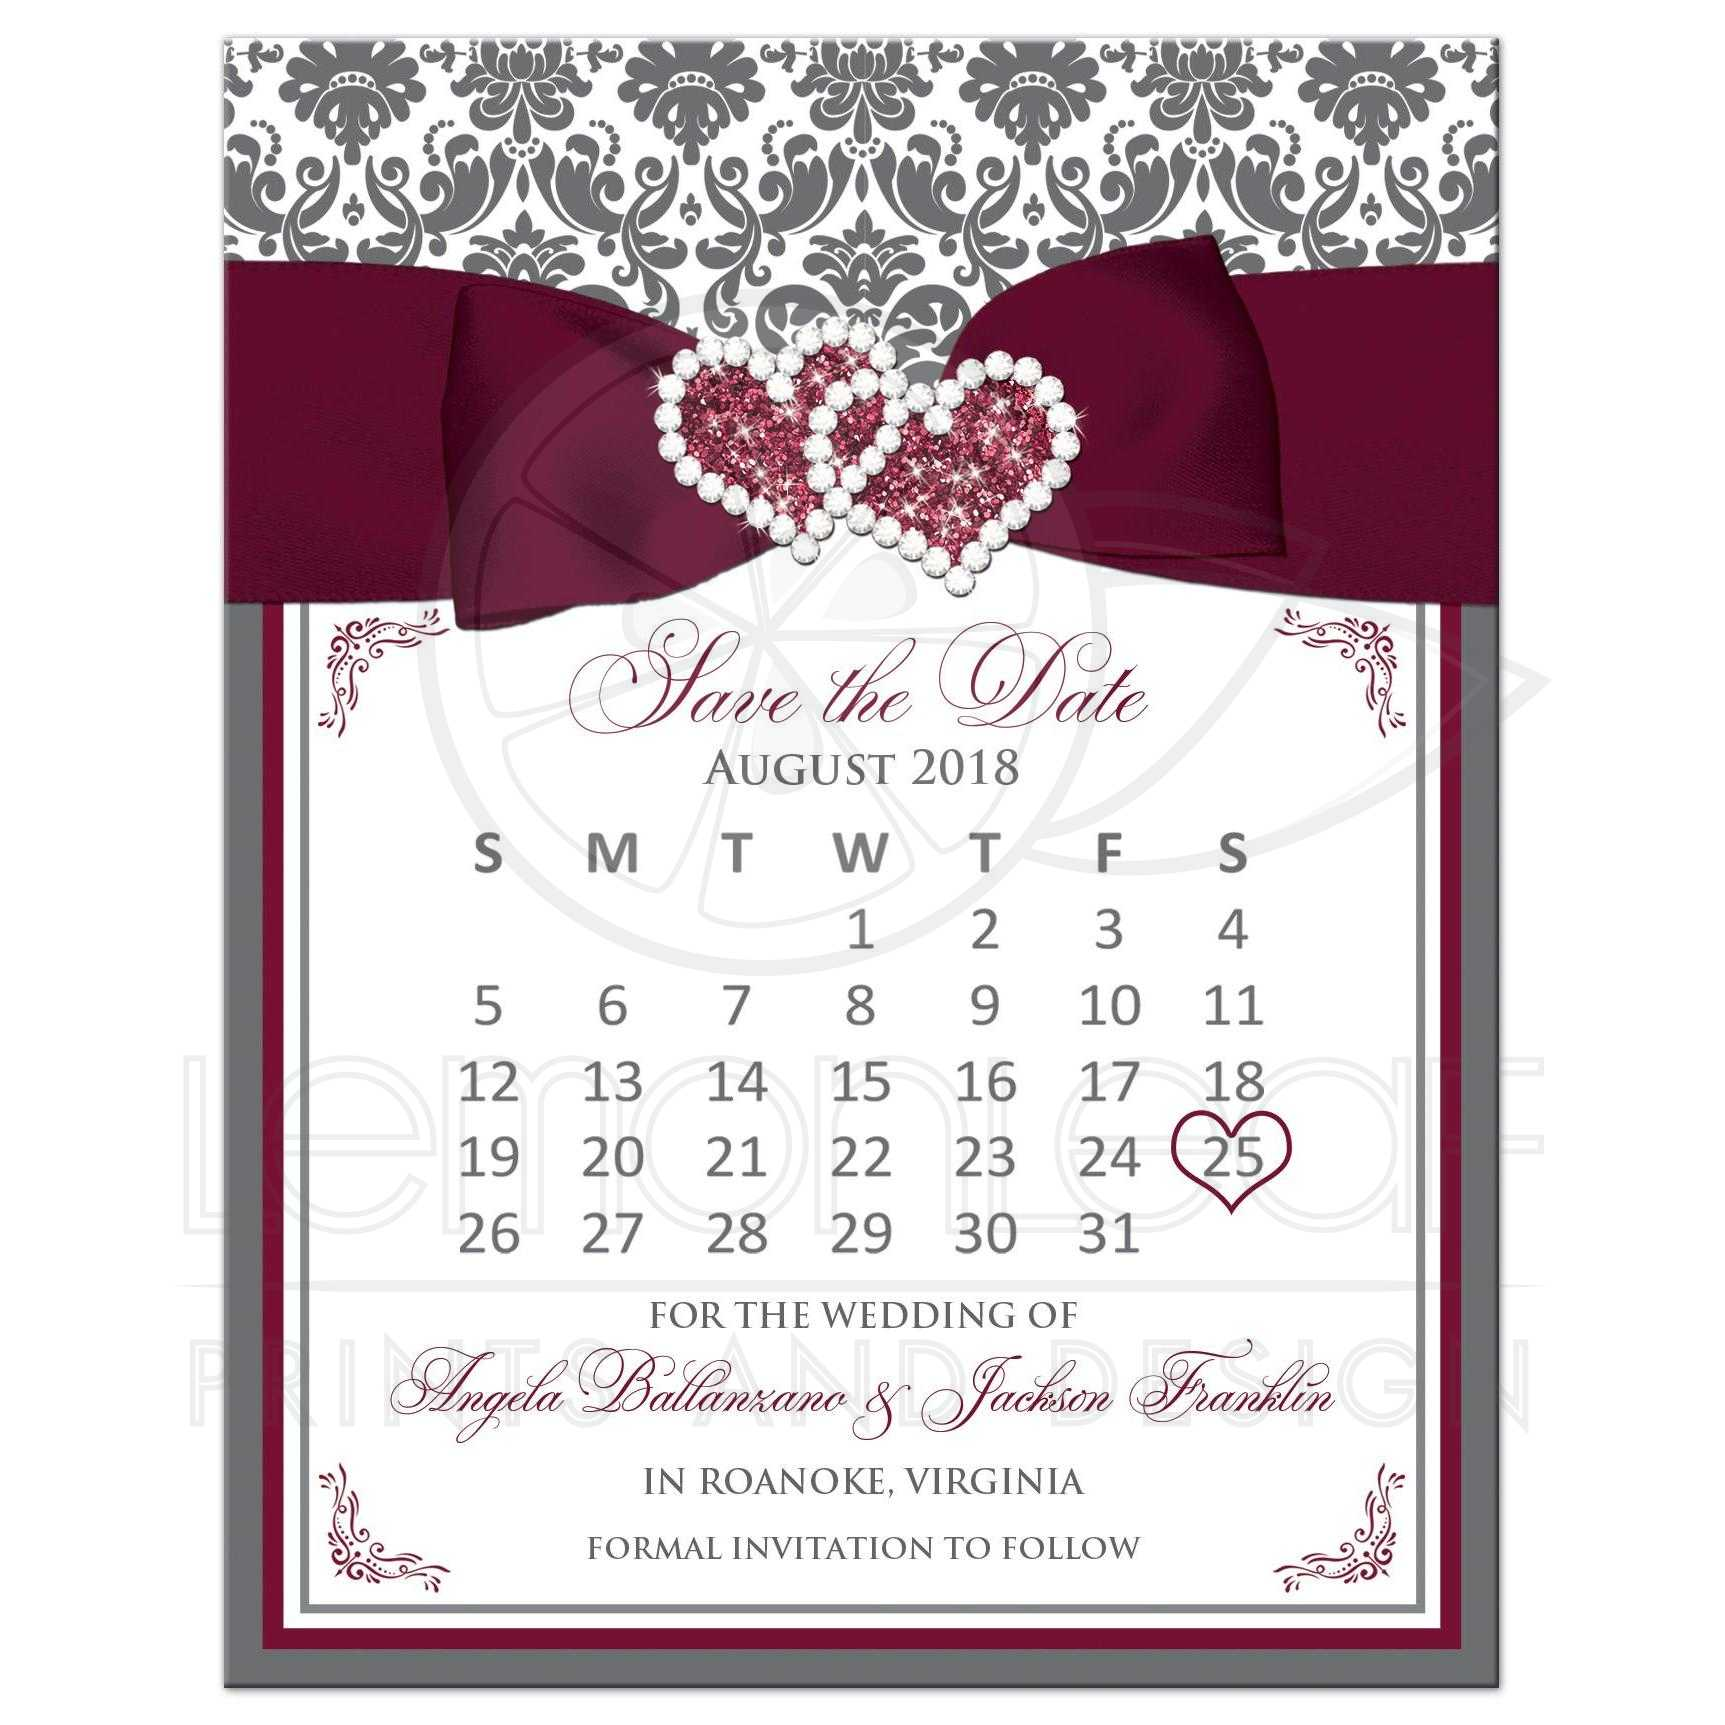 Wedding Save The Dates.Burgundy White Gray Damask Wedding Save The Date Card